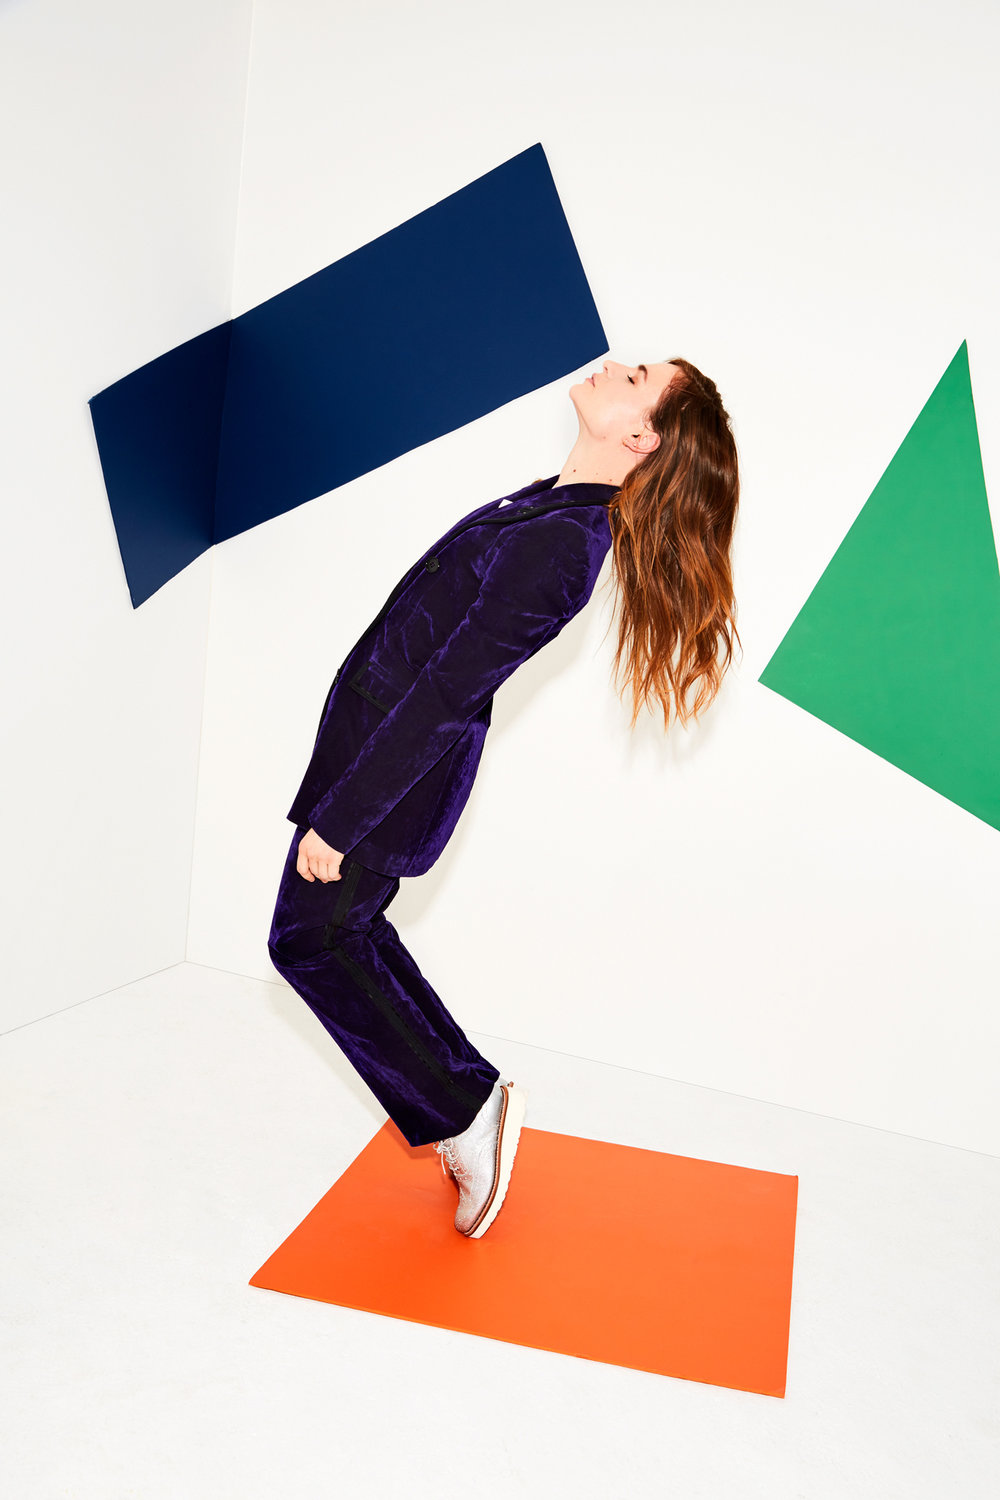 KATE OWEN | CHRISTINE AND THE QUEENS // REFINERY29